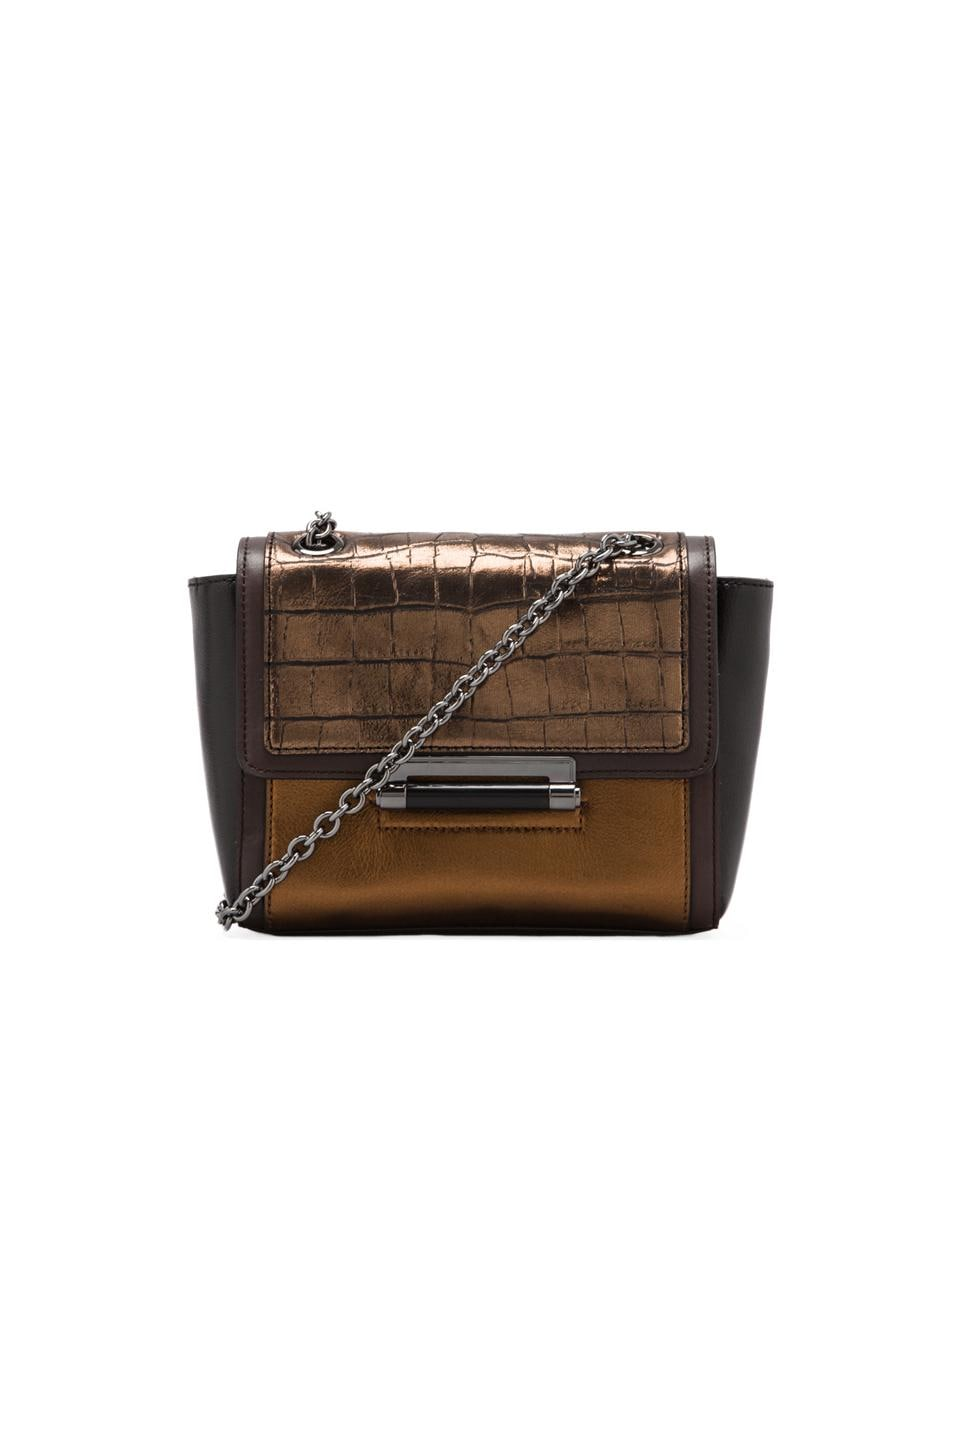 Diane von Furstenberg Mini Embossed Bag in Metallic